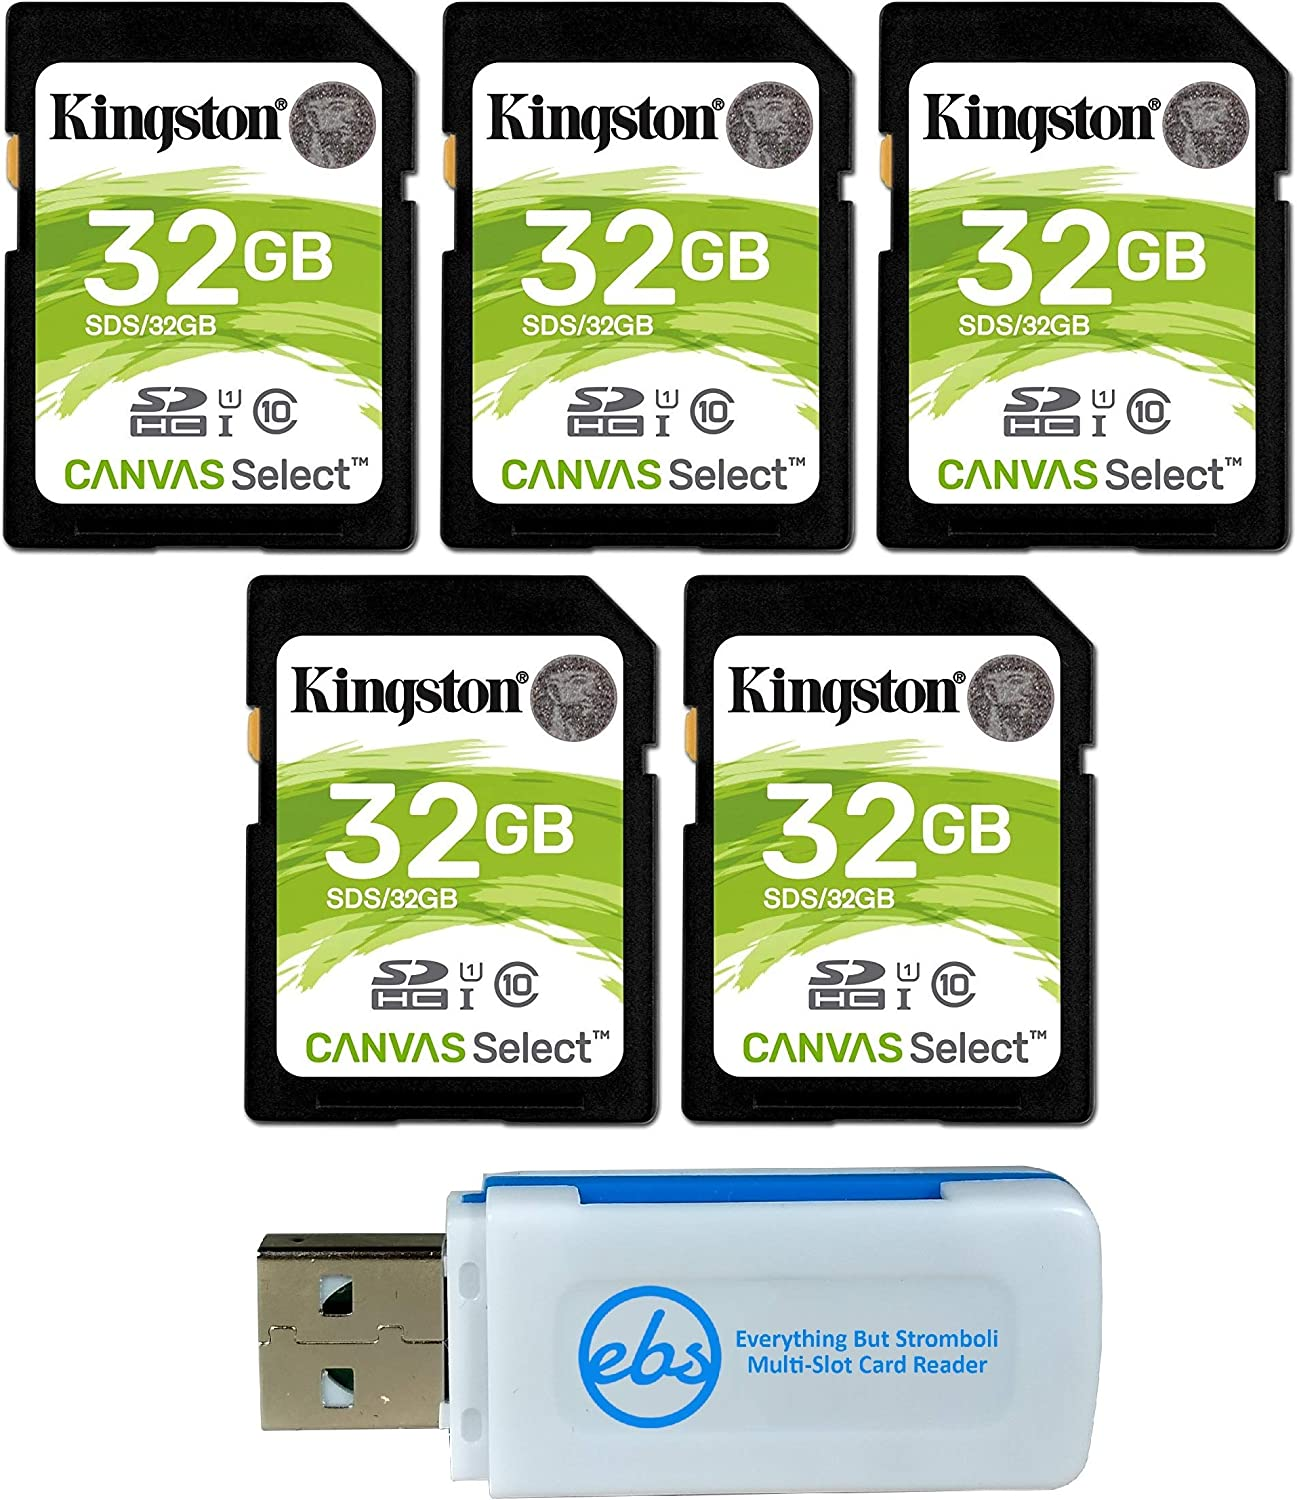 Kingston 32GB SD Memory Card (5 Pack) Canvas Select SDHC Card Class 10 UHS-1 (SDS/32GB) Bundle with (1) Everything But Stromboli SD & Micro Card Reader